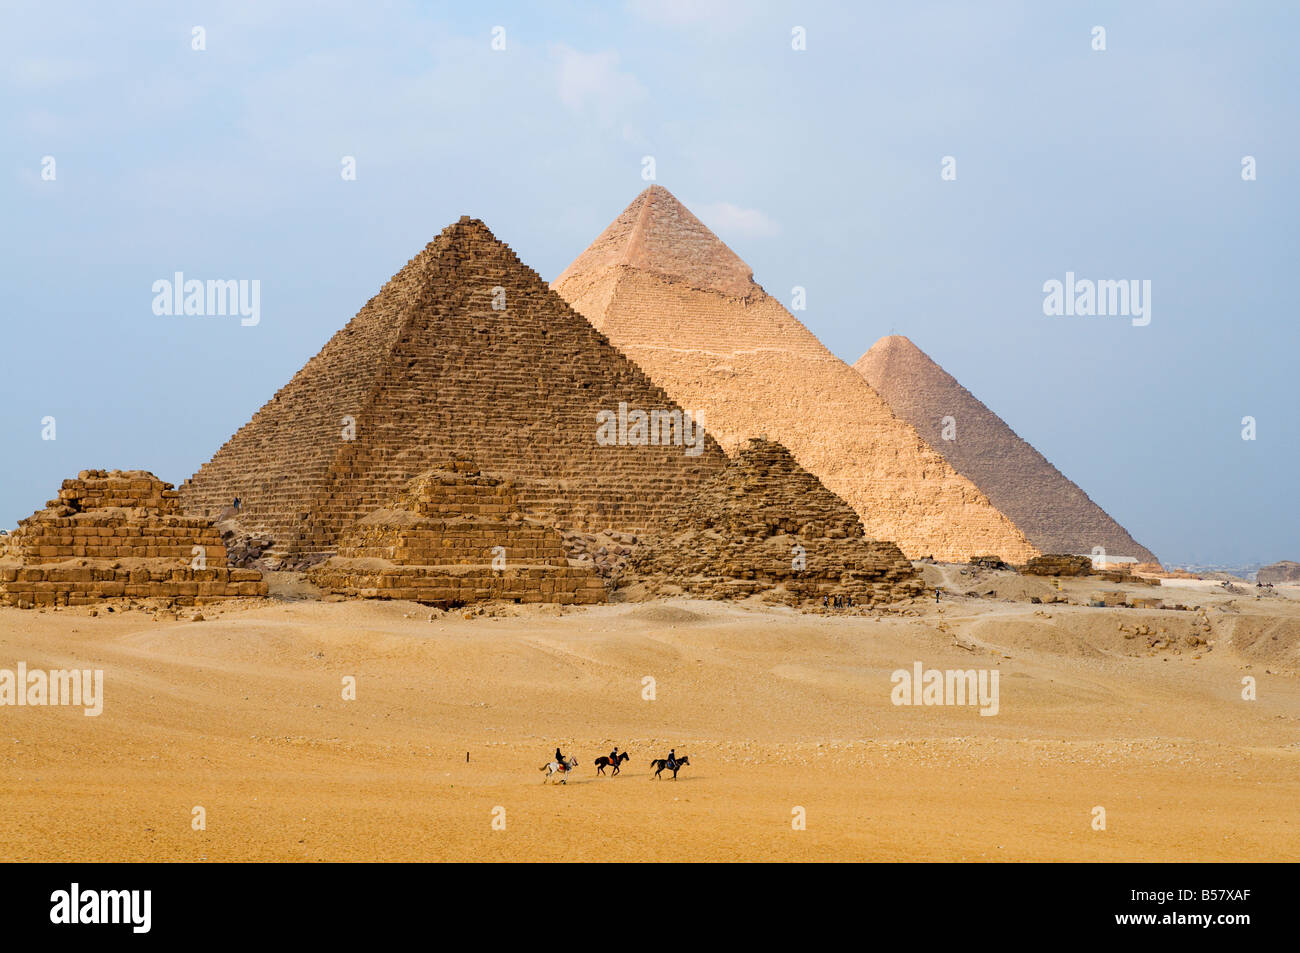 The Pyramids of Giza, Giza, UNESCO World Heritage Site, near Cairo, Egypt, North Africa, Africa - Stock Image